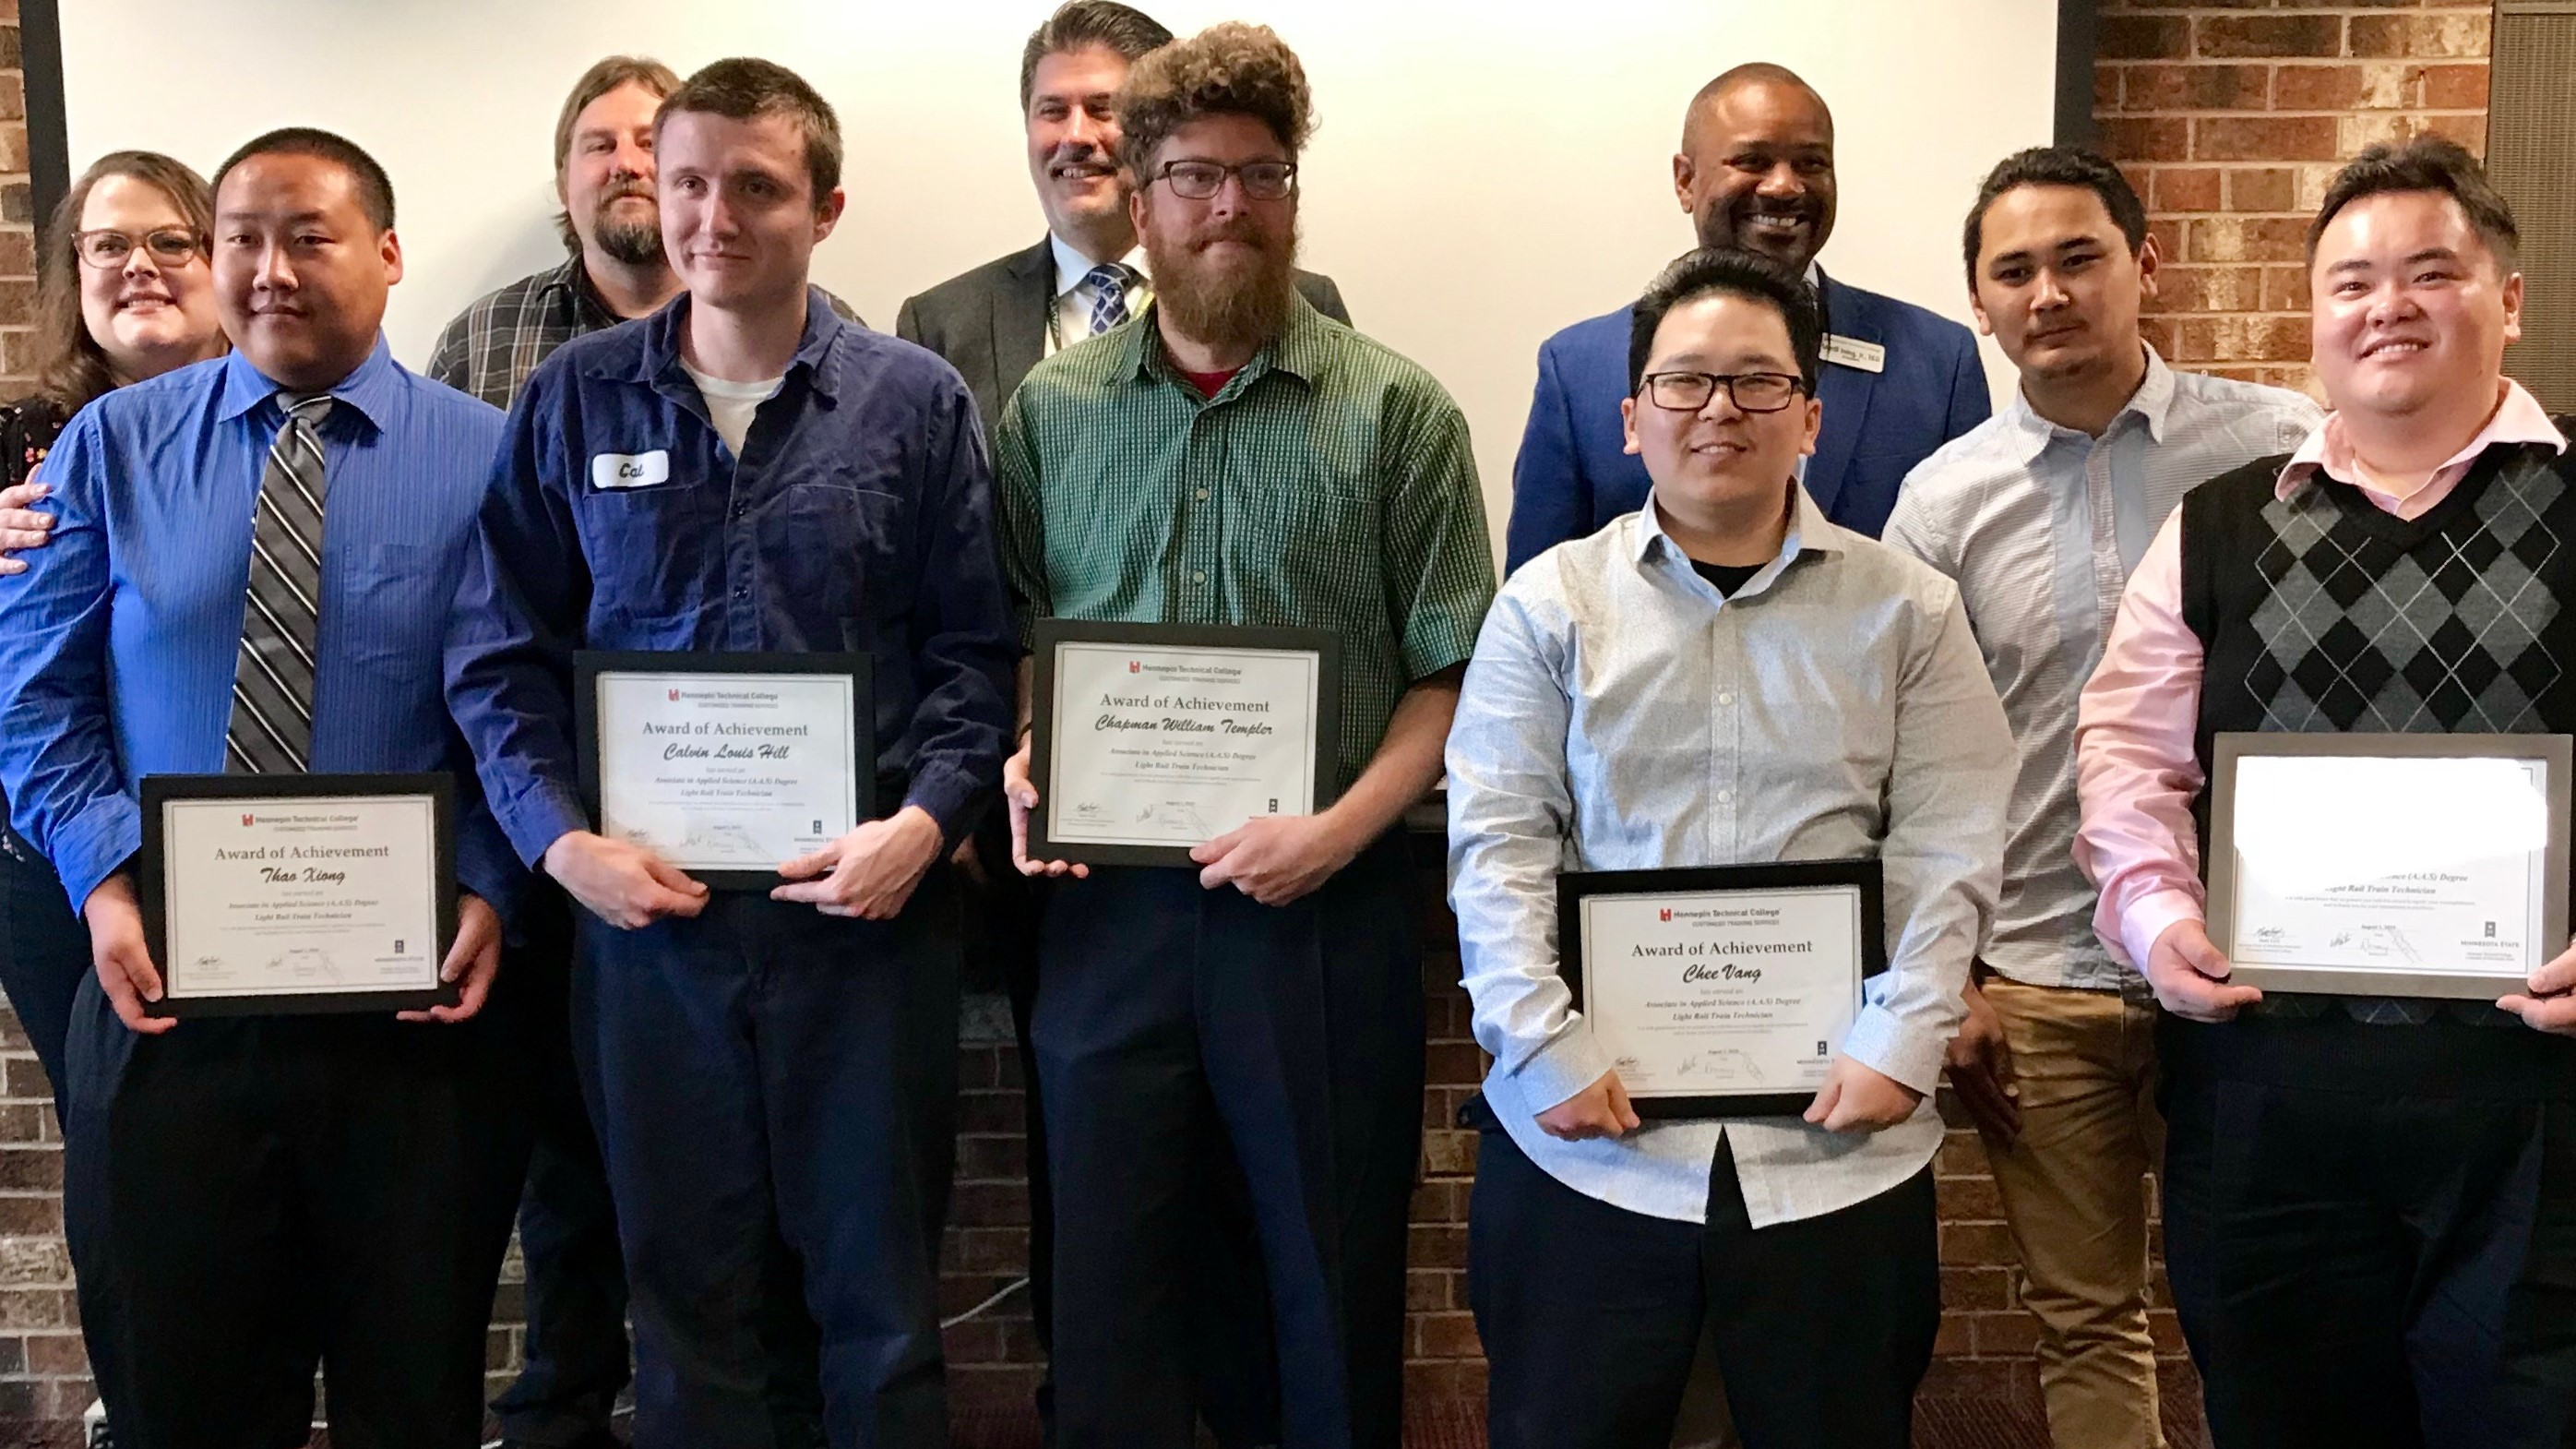 Six LRT train technicians receive certificates of completion in a ceremony Aug. 2, 2019, at Hennepin Technical College where they earned associate degrees. From the left in the front row, they are: Thao Xiong, Calvin Hill, Chapman Templer, Chee Vang, Tenzin Kunga and Toua Yang.